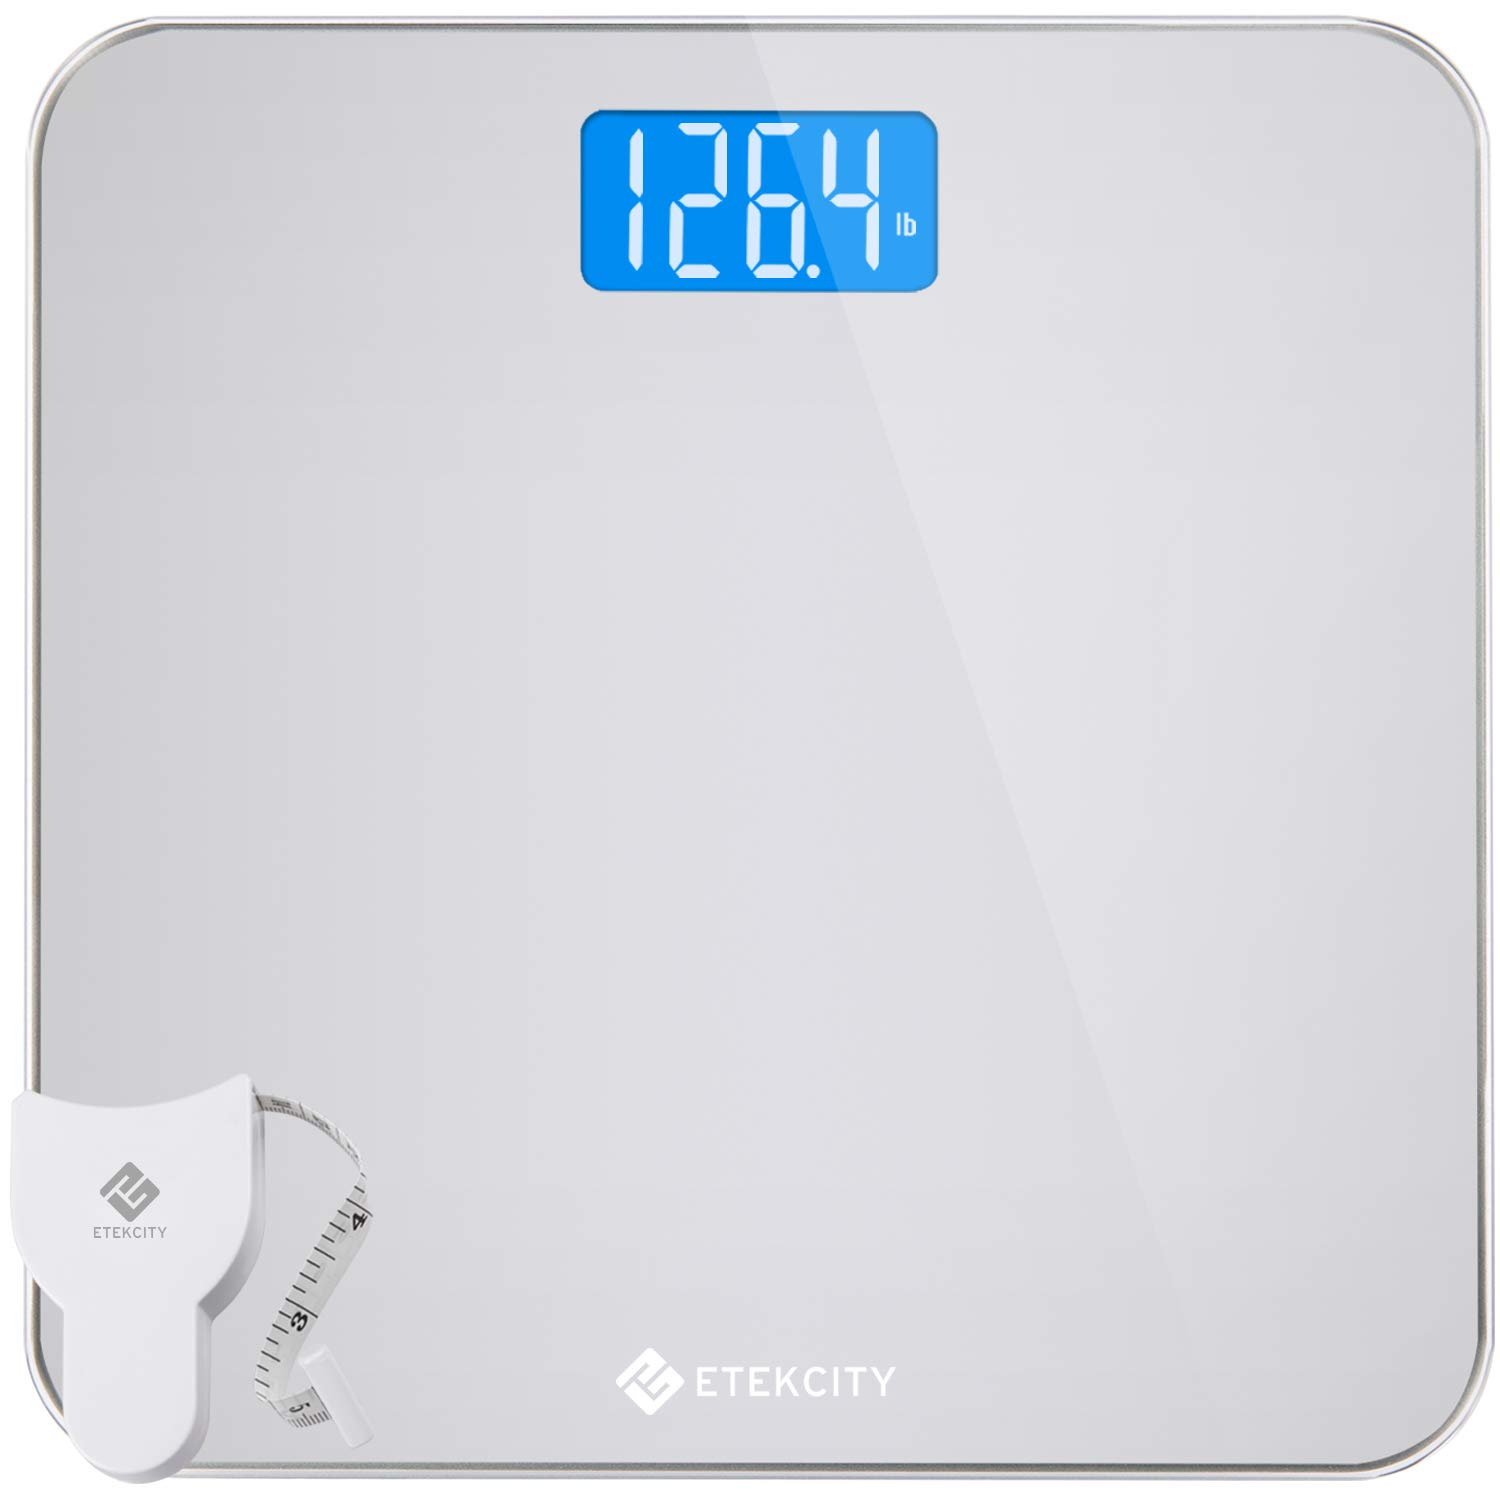 400 Pounds EB4887S Large Blue LCD Backlight Display High Precision Measurements Etekcity Digital Body Weight Bathroom Scale with Body Tape Measure and Round Corner Design